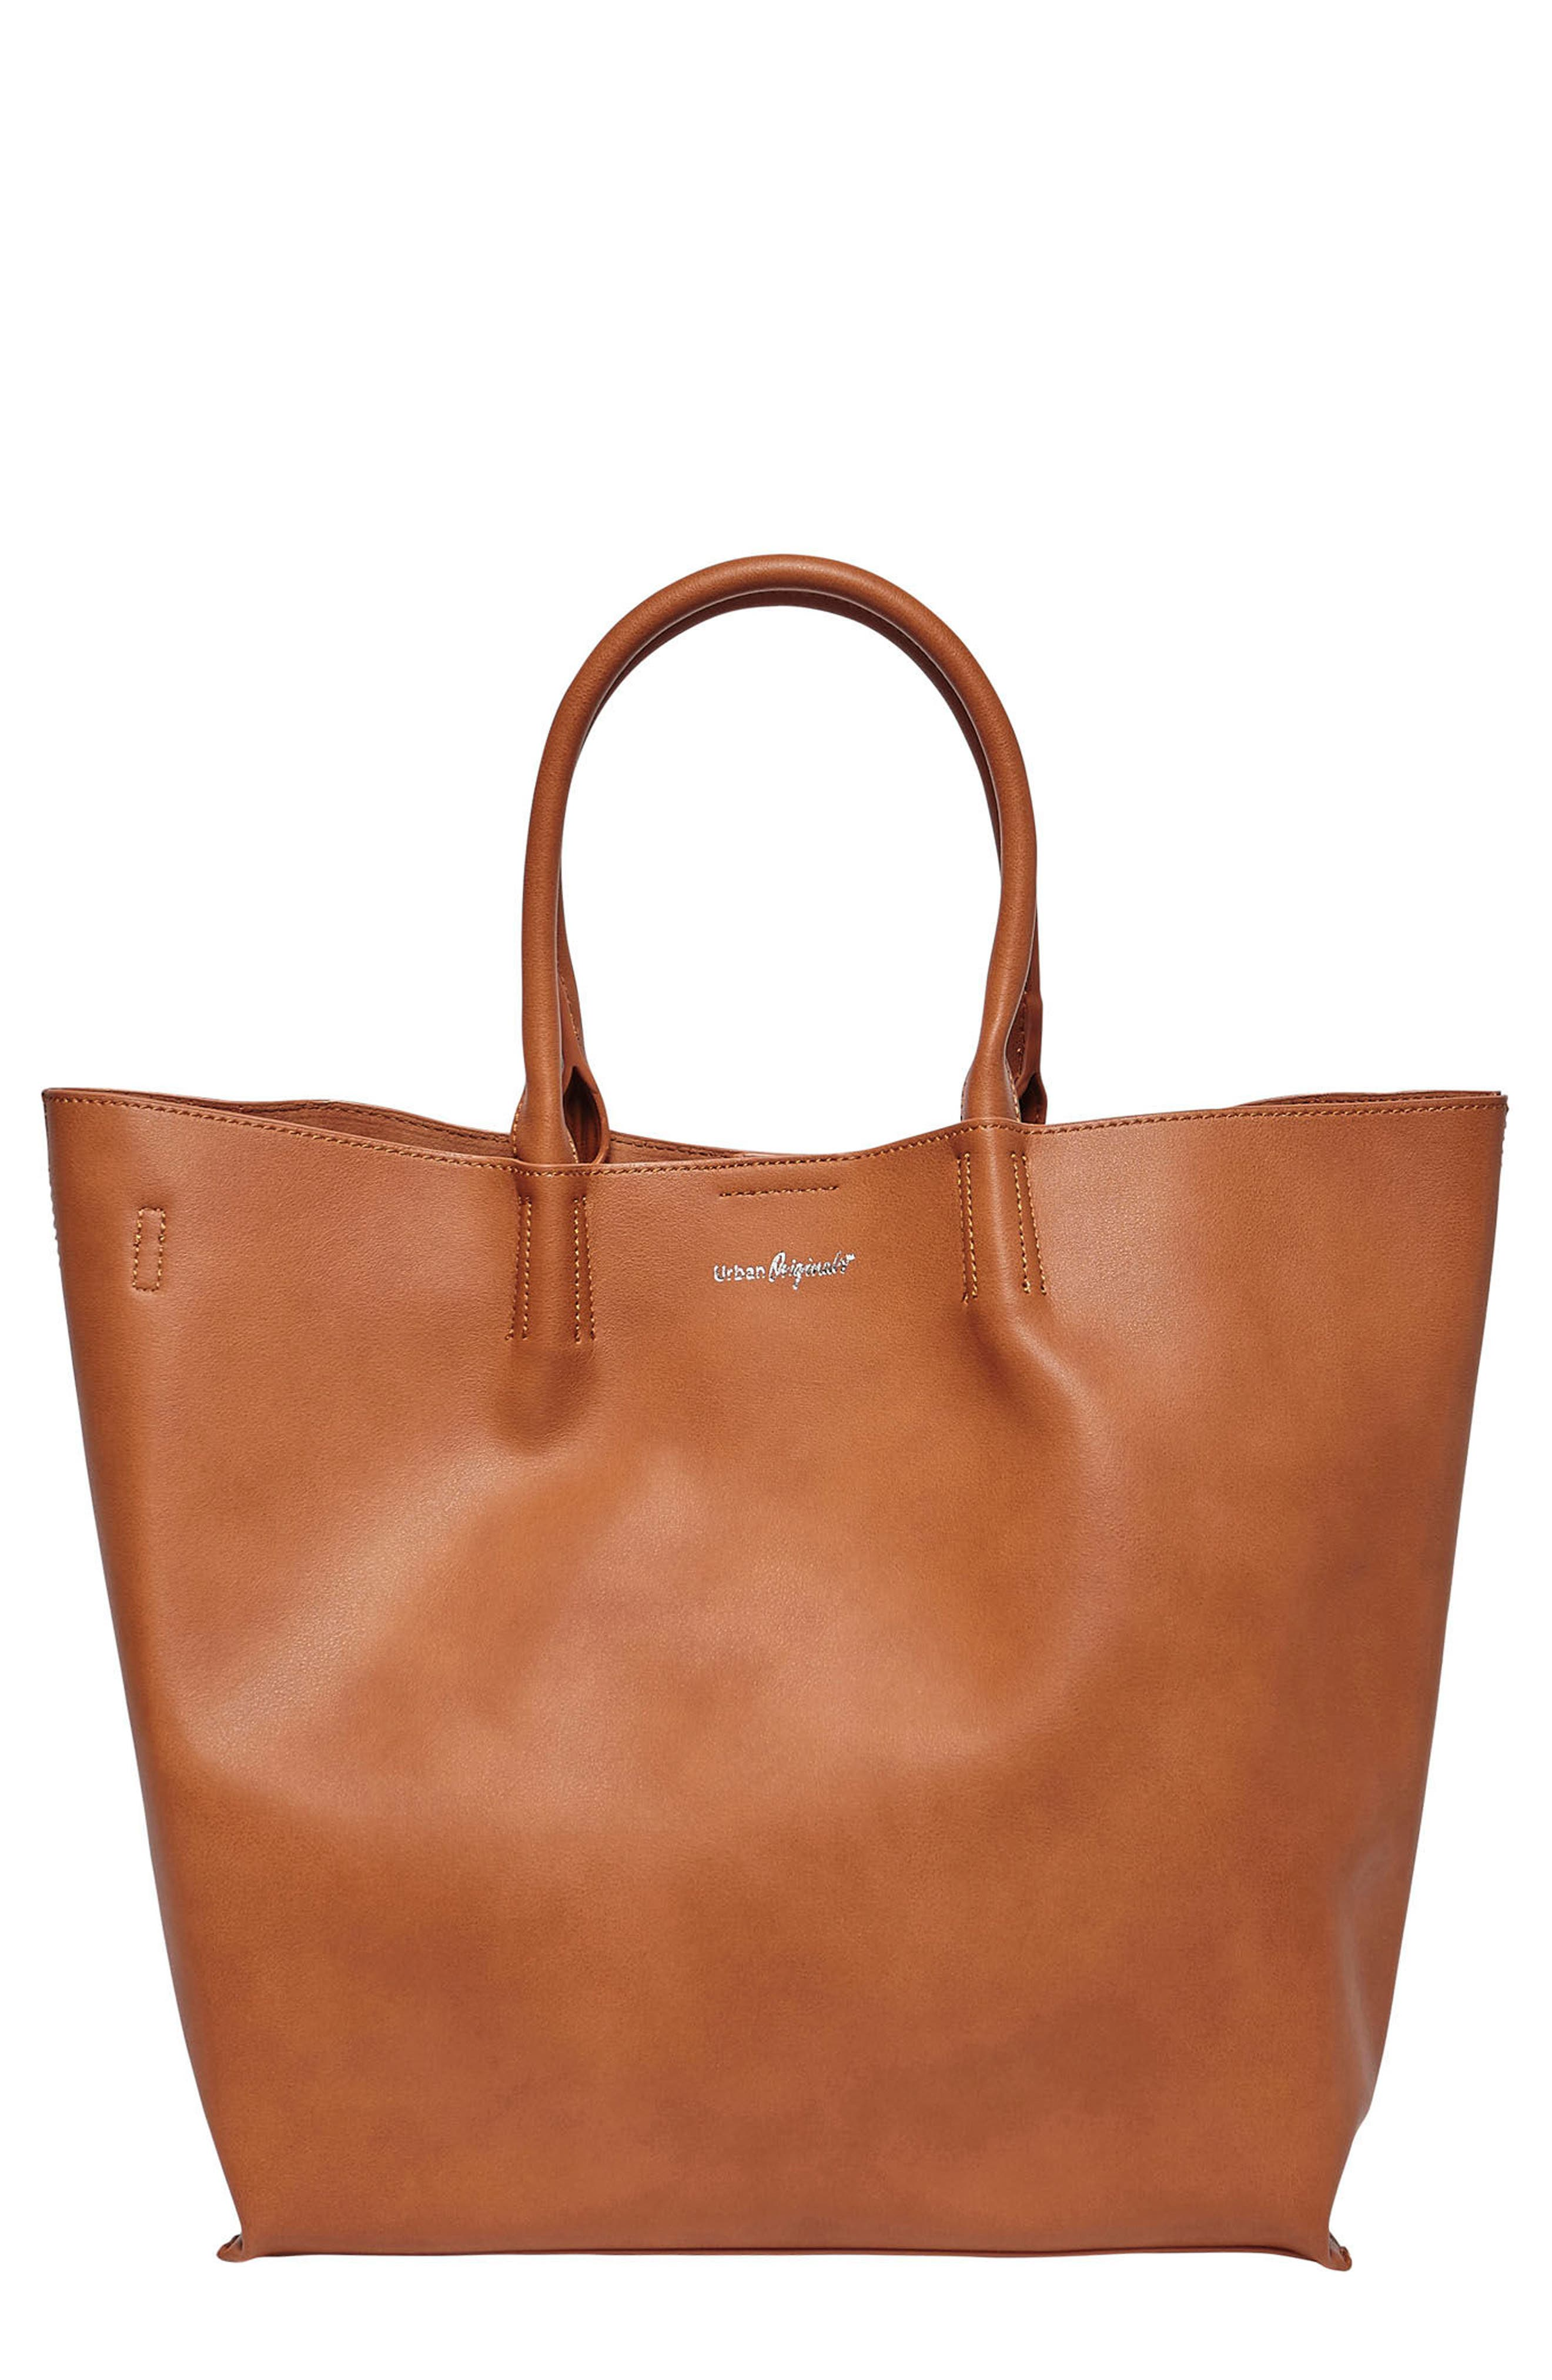 Butterfly Vegan Leather Tote,                             Main thumbnail 1, color,                             200